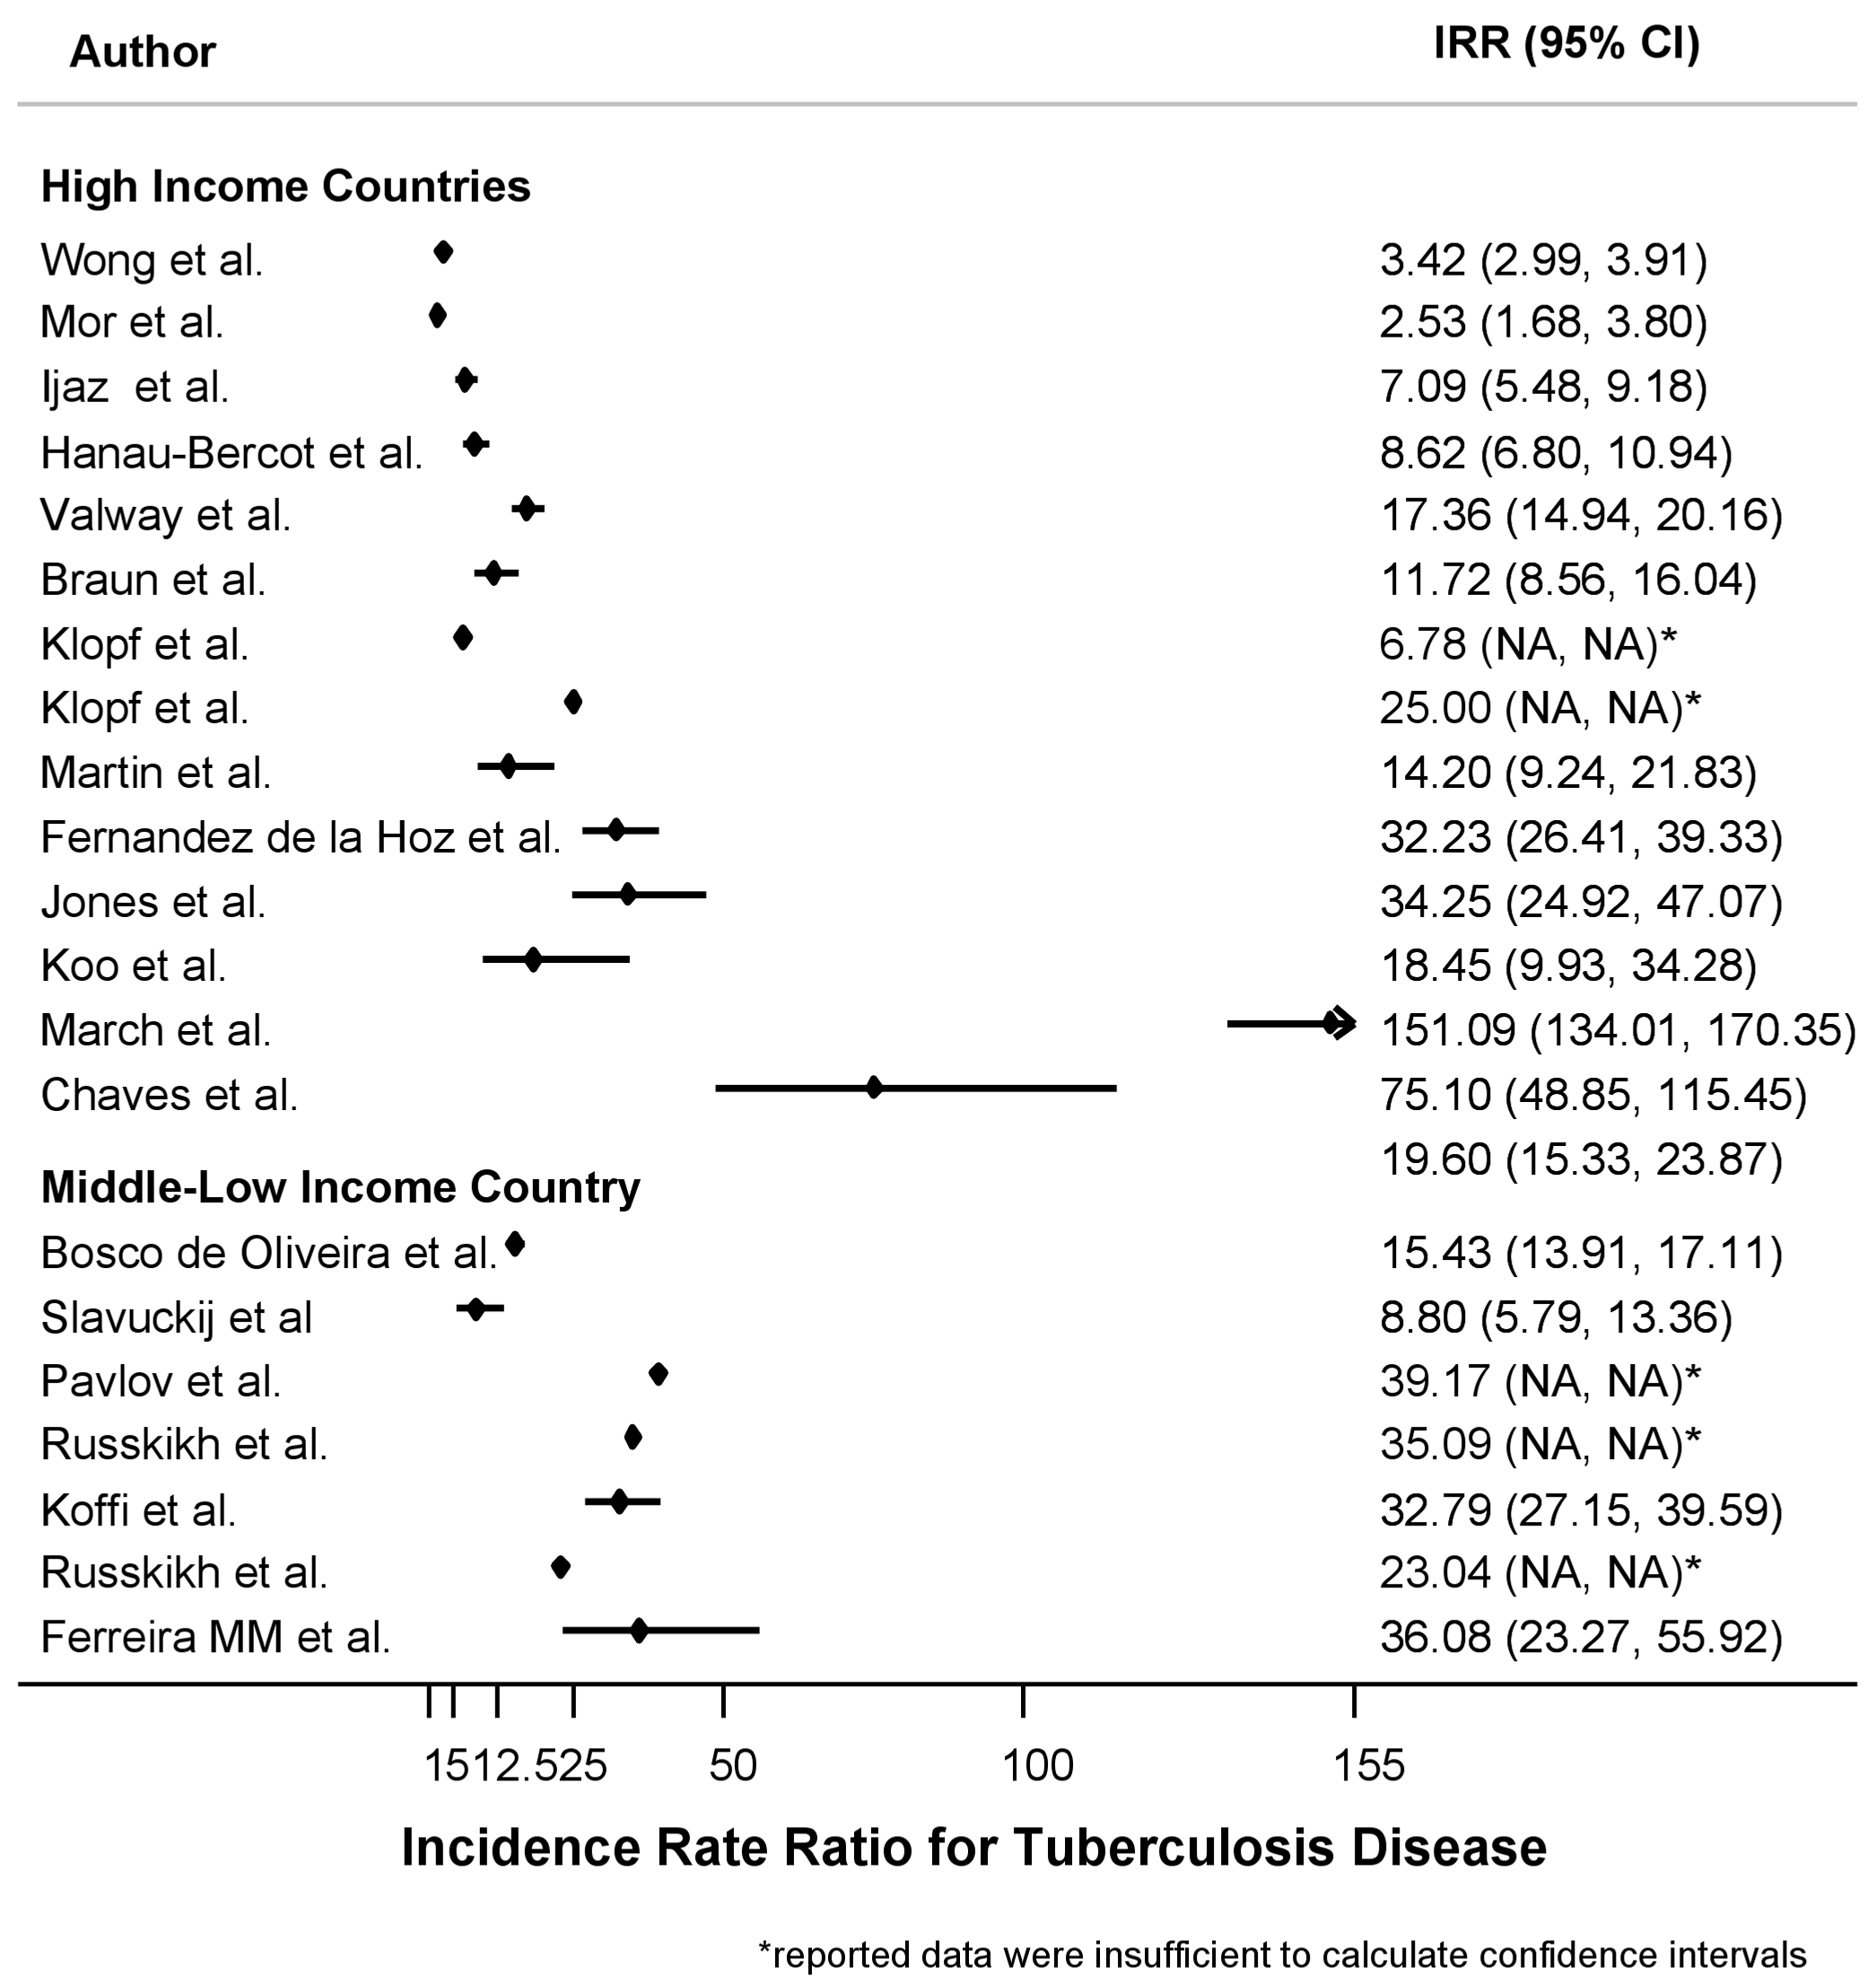 Forest plot showing the study-specific estimates of the IRR for tuberculosis in prisons as compared to the corresponding general populations, by income area according to the World Bank classification.